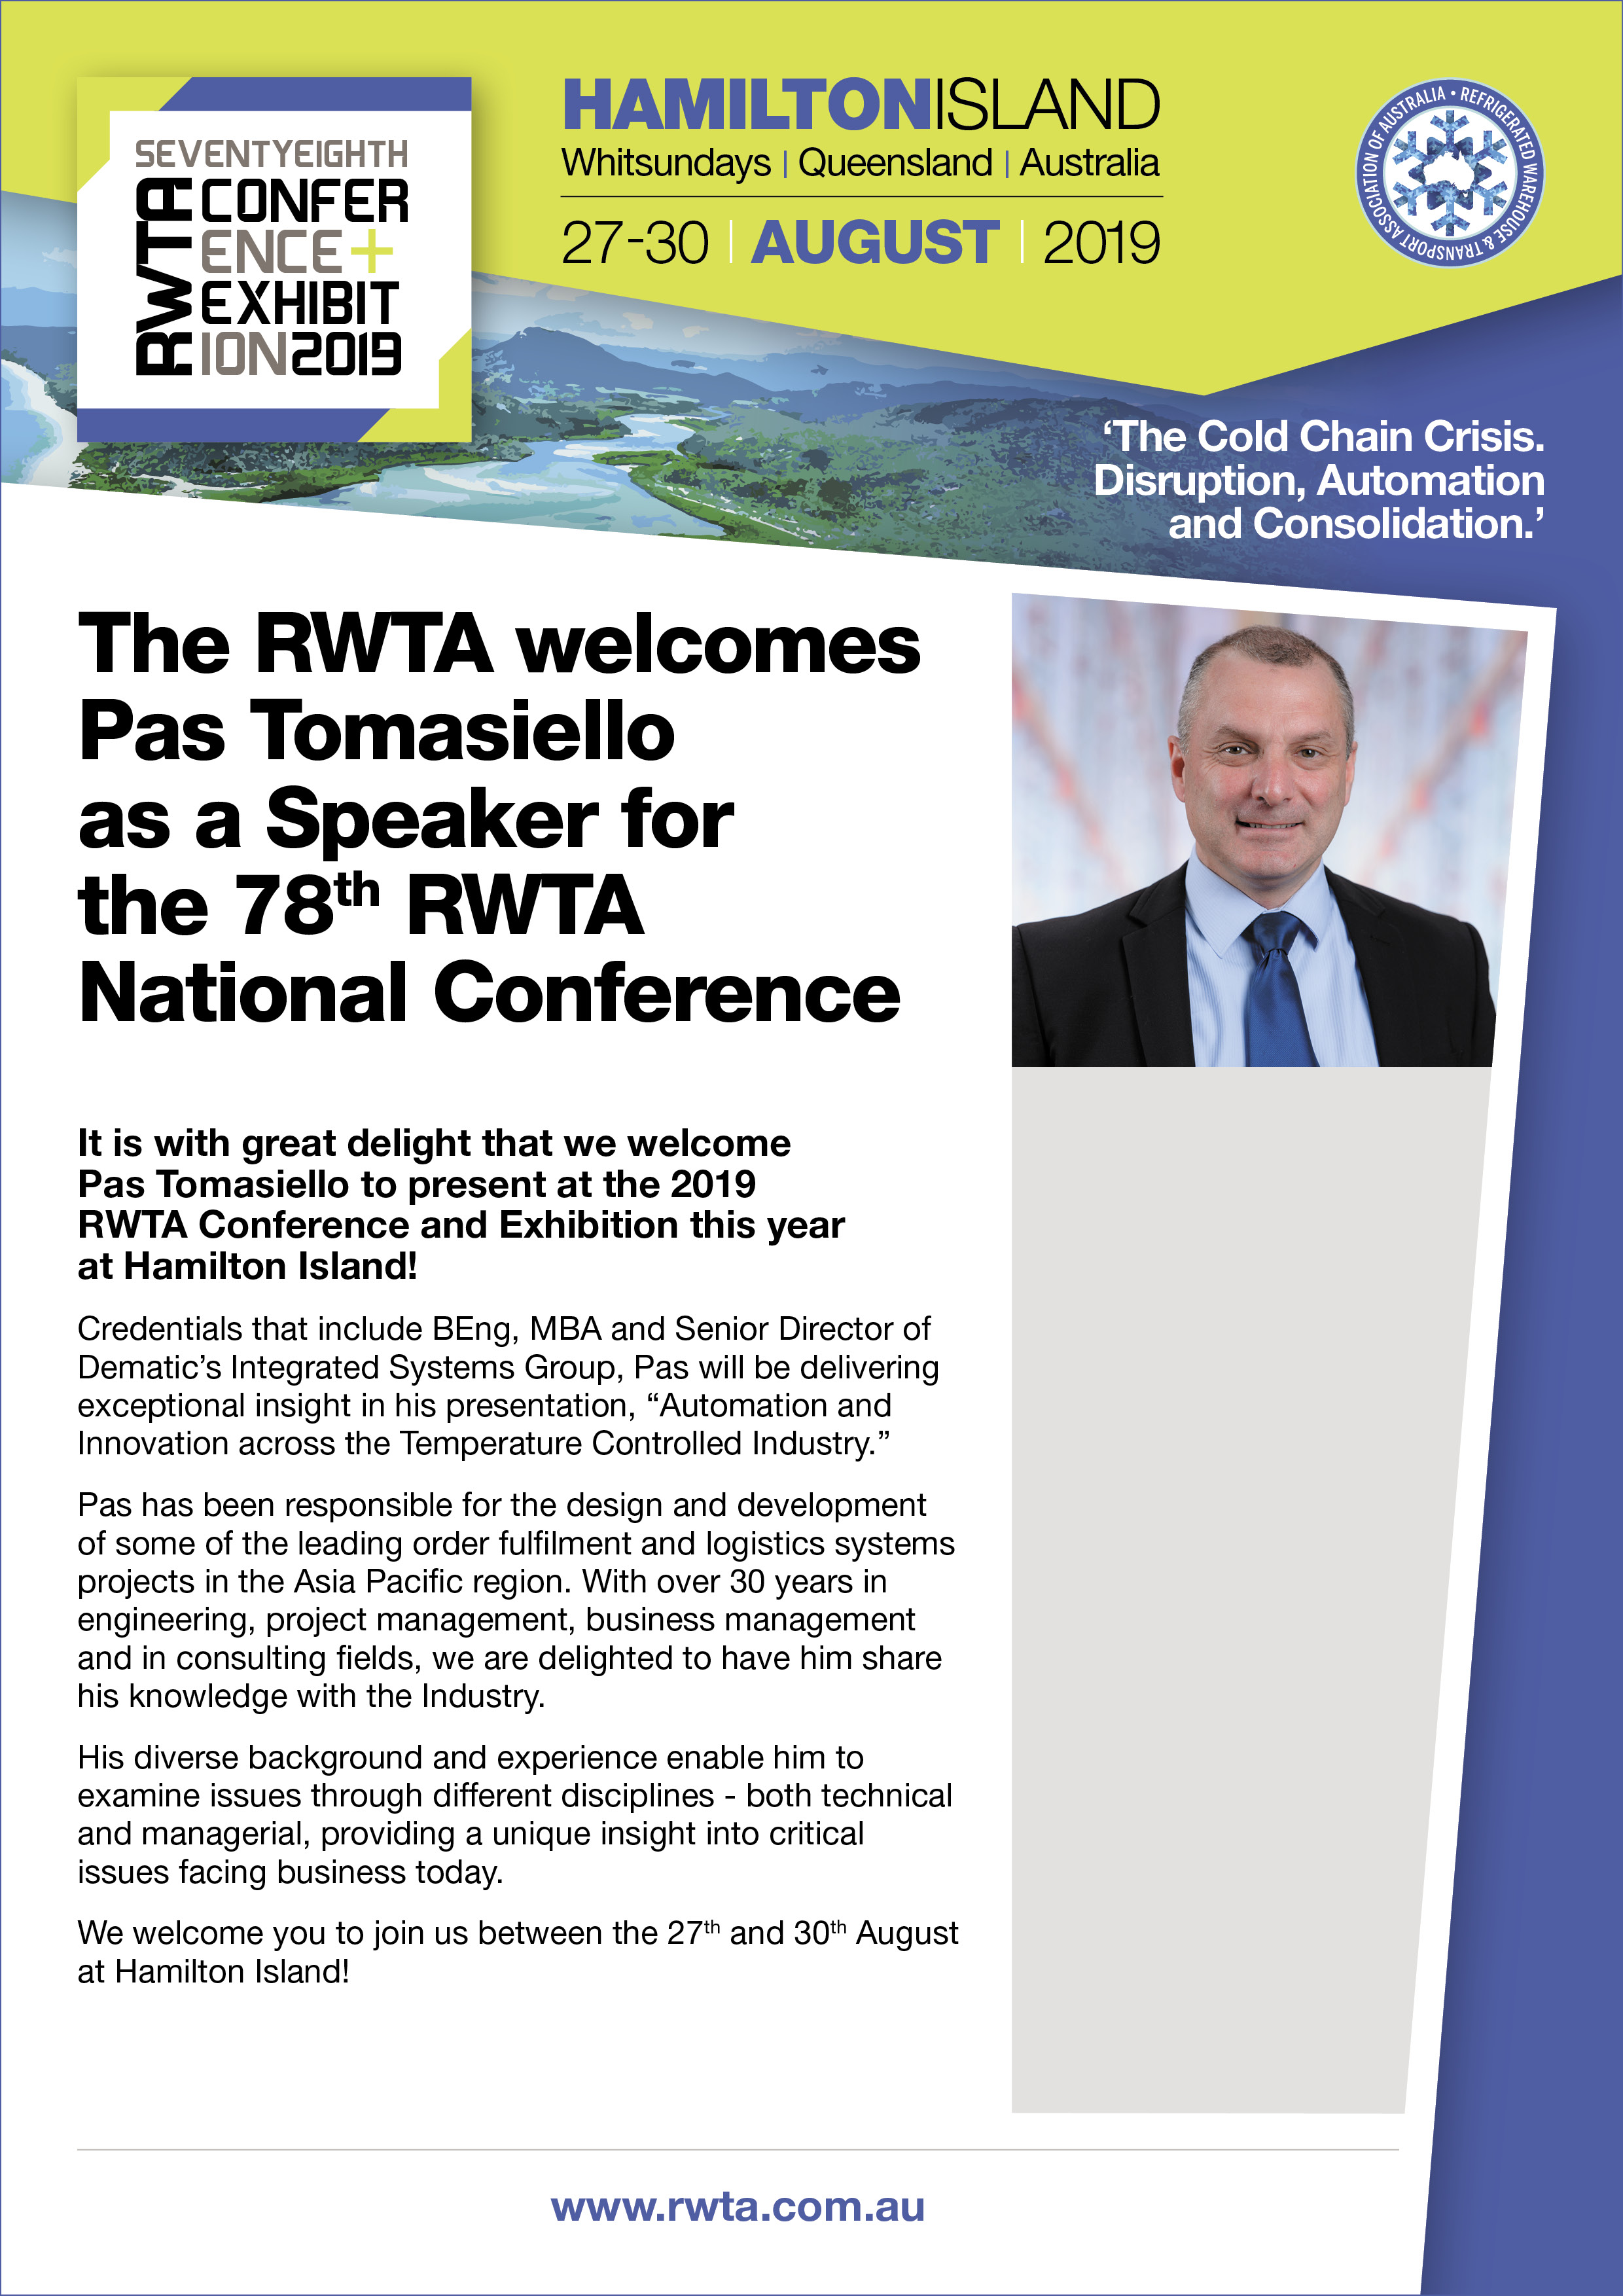 Pas Tomasiello to present at the 2019 RWTA Conference and